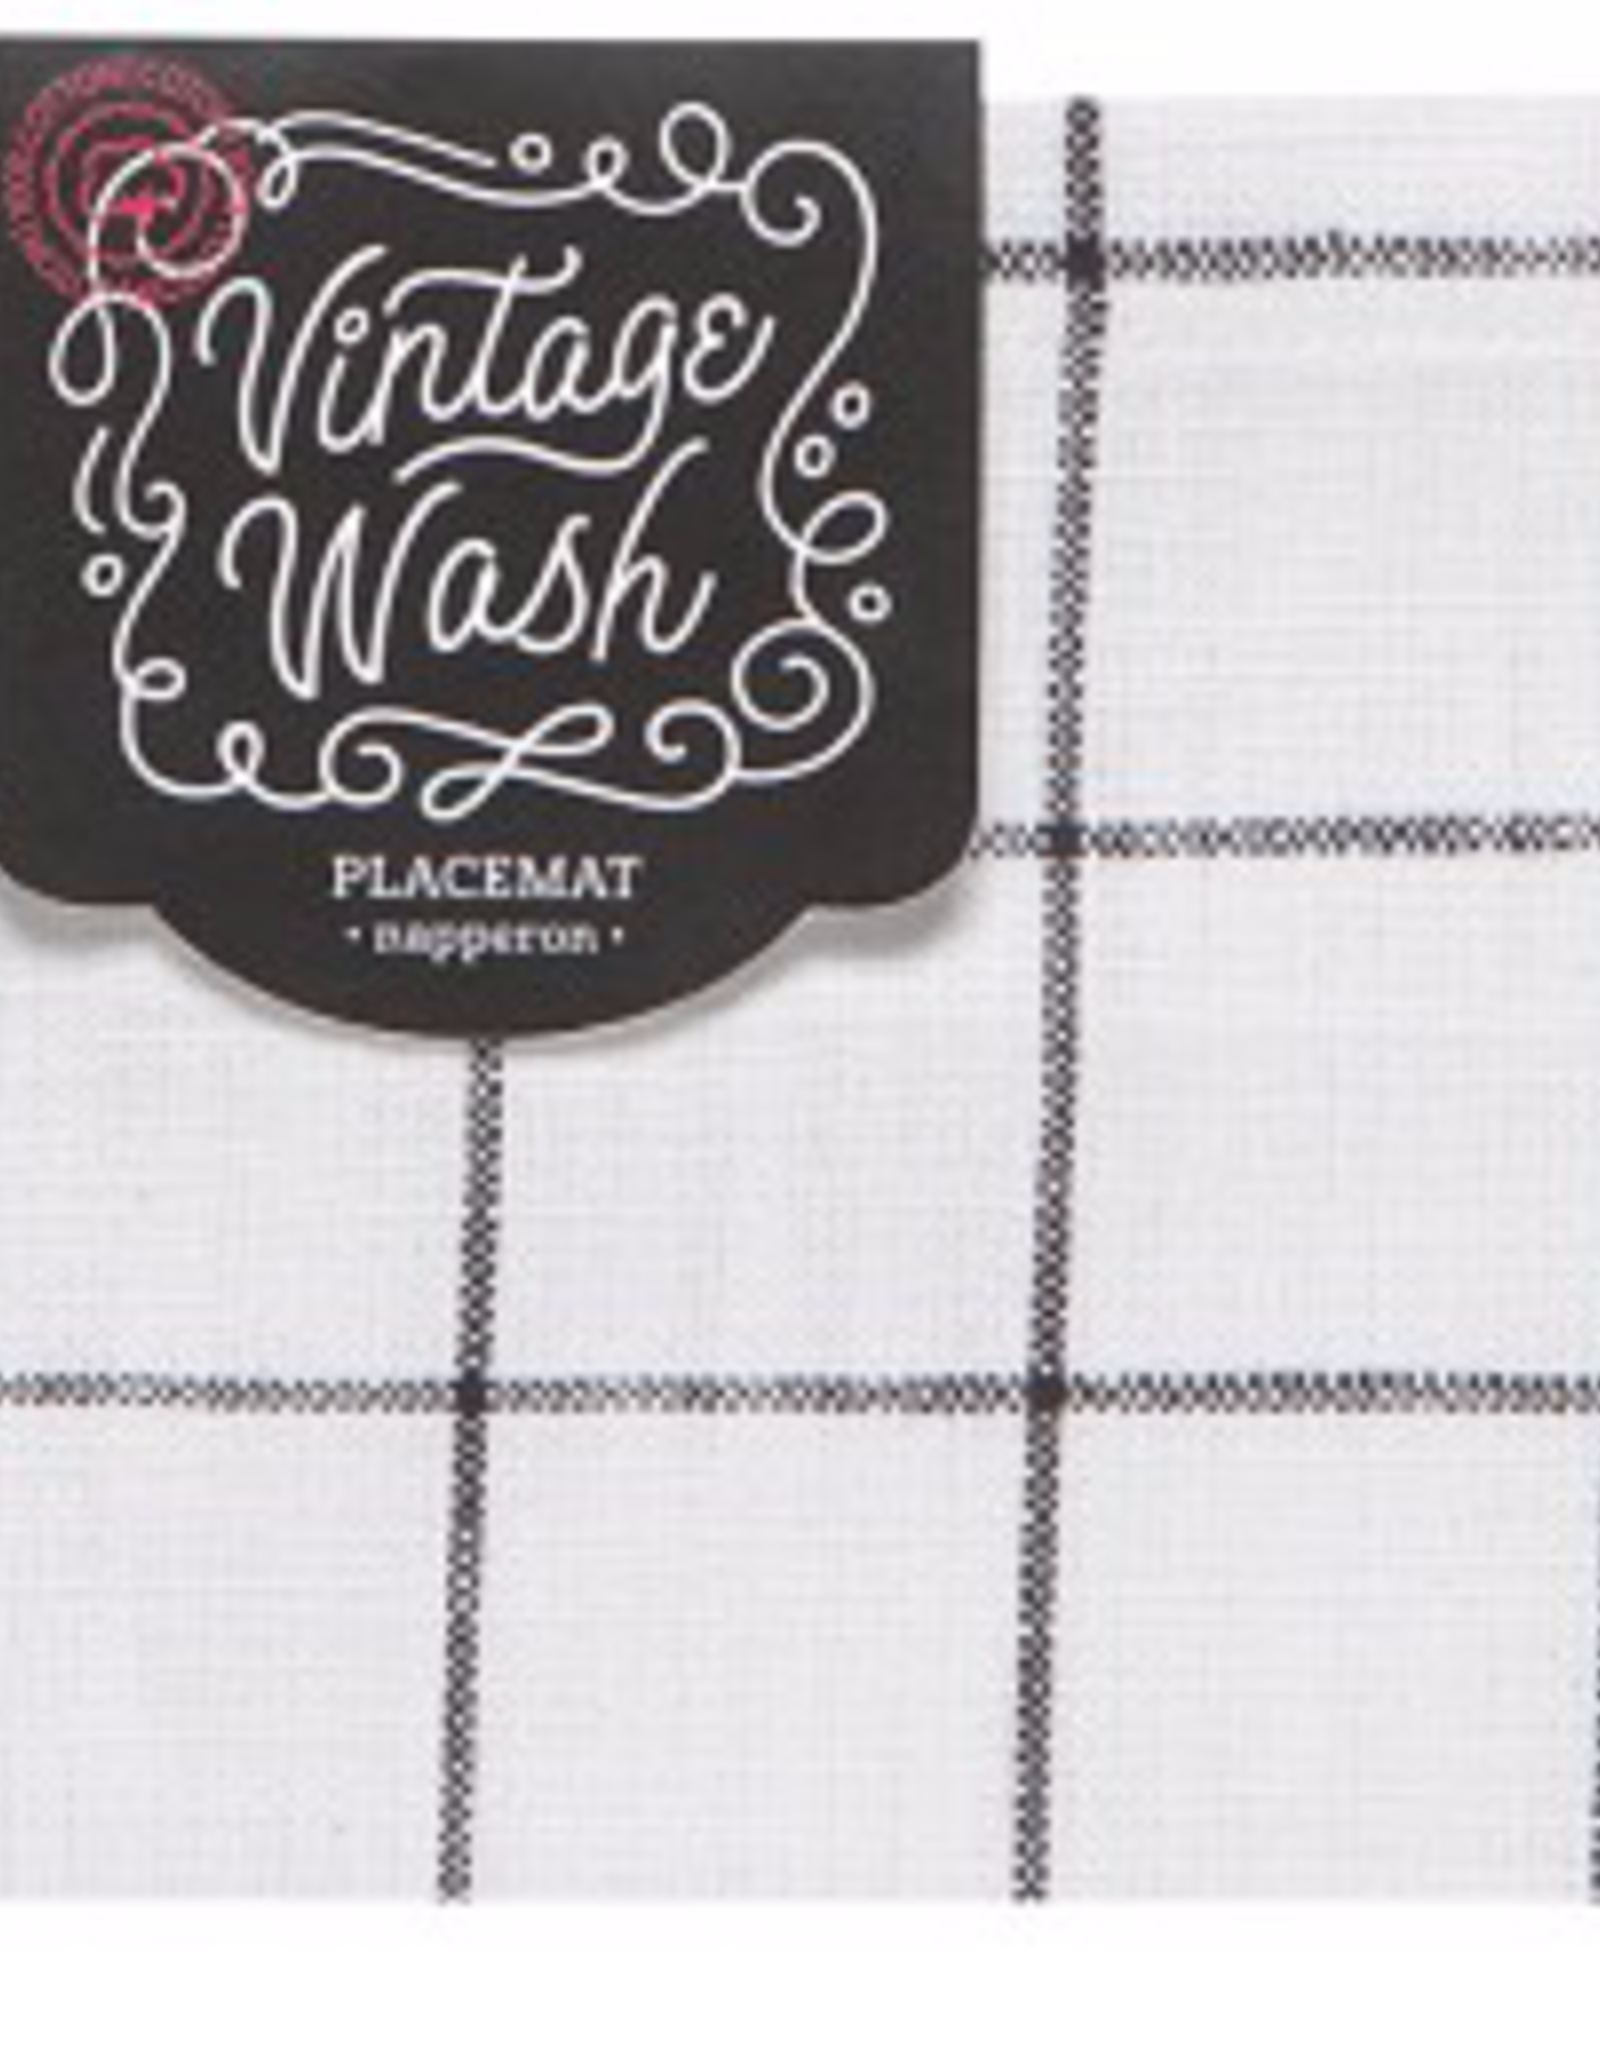 Vintage Wash Placemat-Black